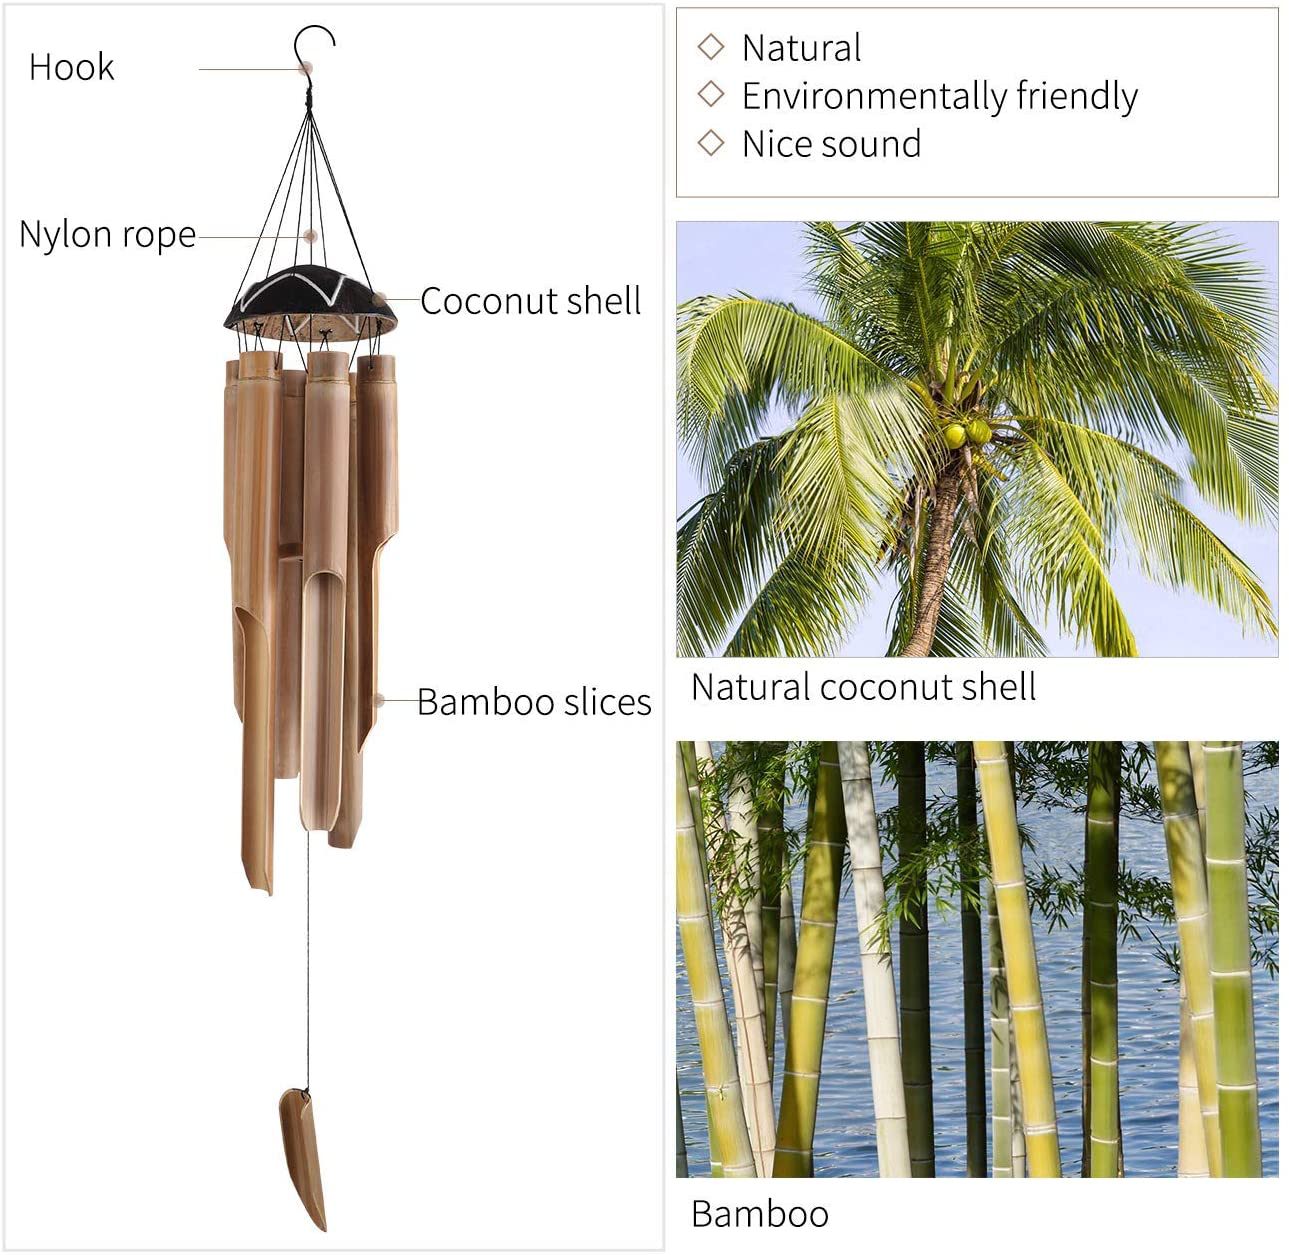 GeeToo Handmade Bamboo Wind Chimes Outdoors & Indoors, Large Coconut Top, 6 Bamboo Tubes, Deep Tune, Wooden Windchimes Home Decor for Patio Lawn Garden, 33 inch